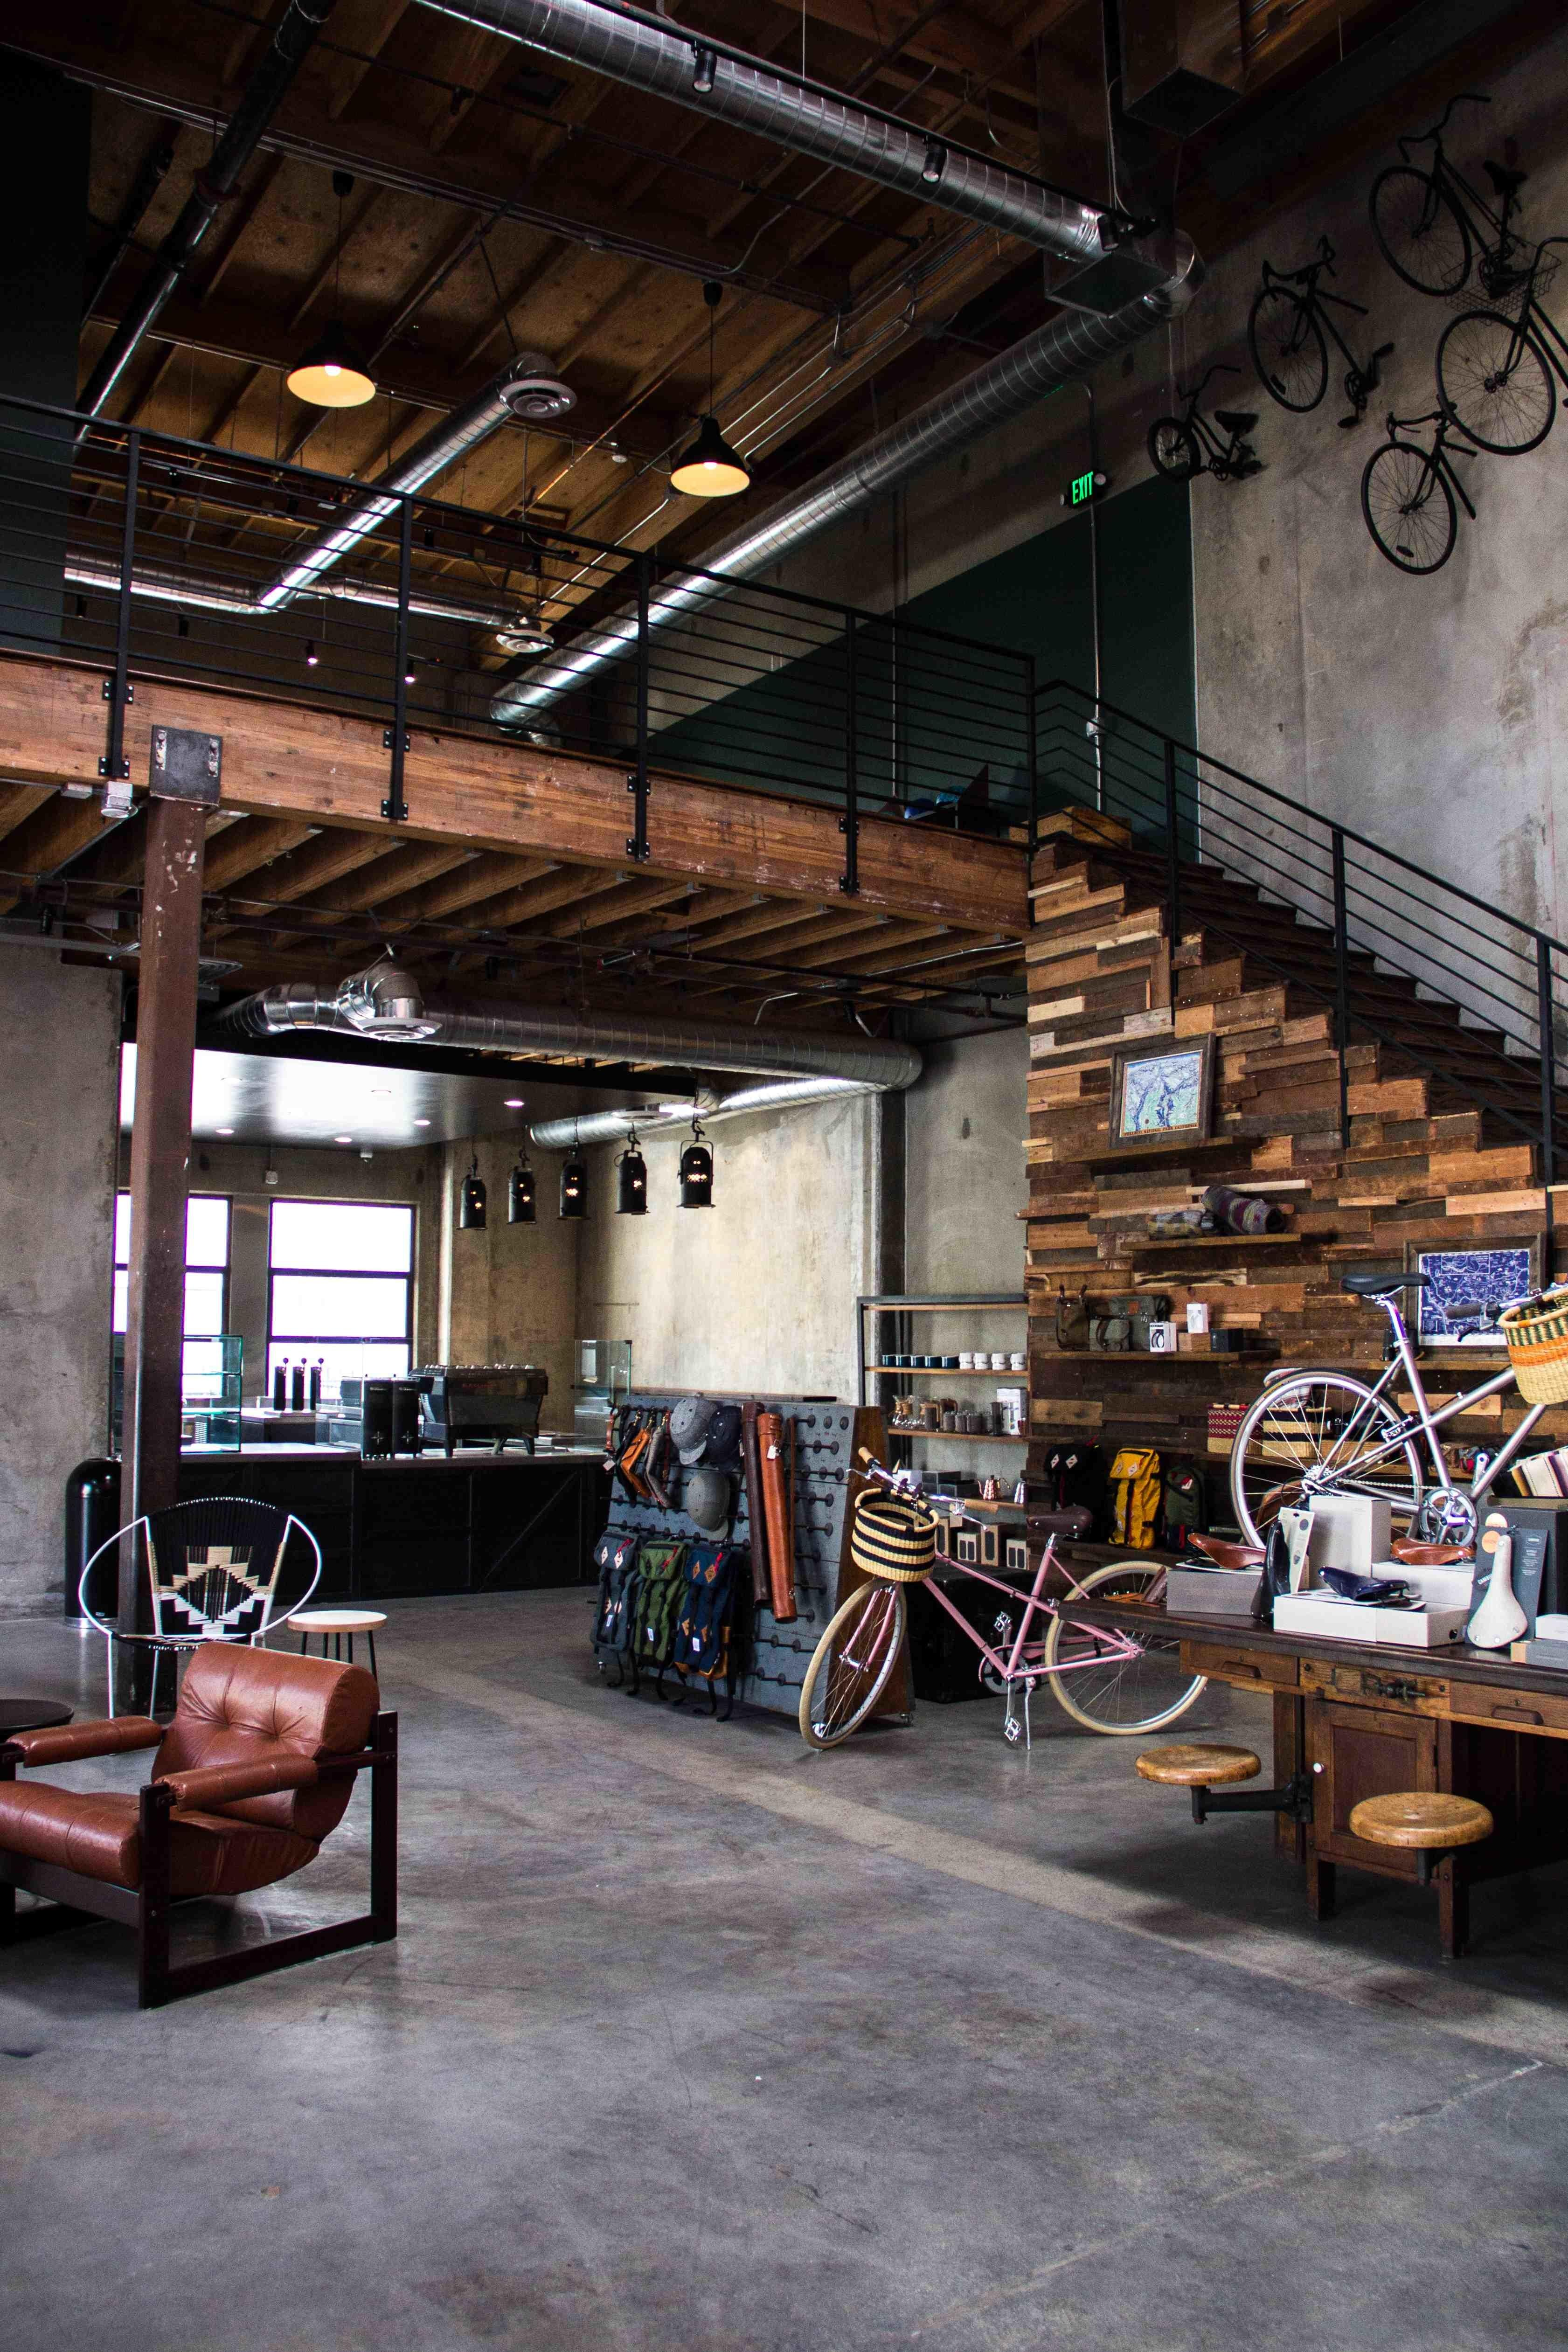 New Urban Focused Shop Caf Opens Downtown